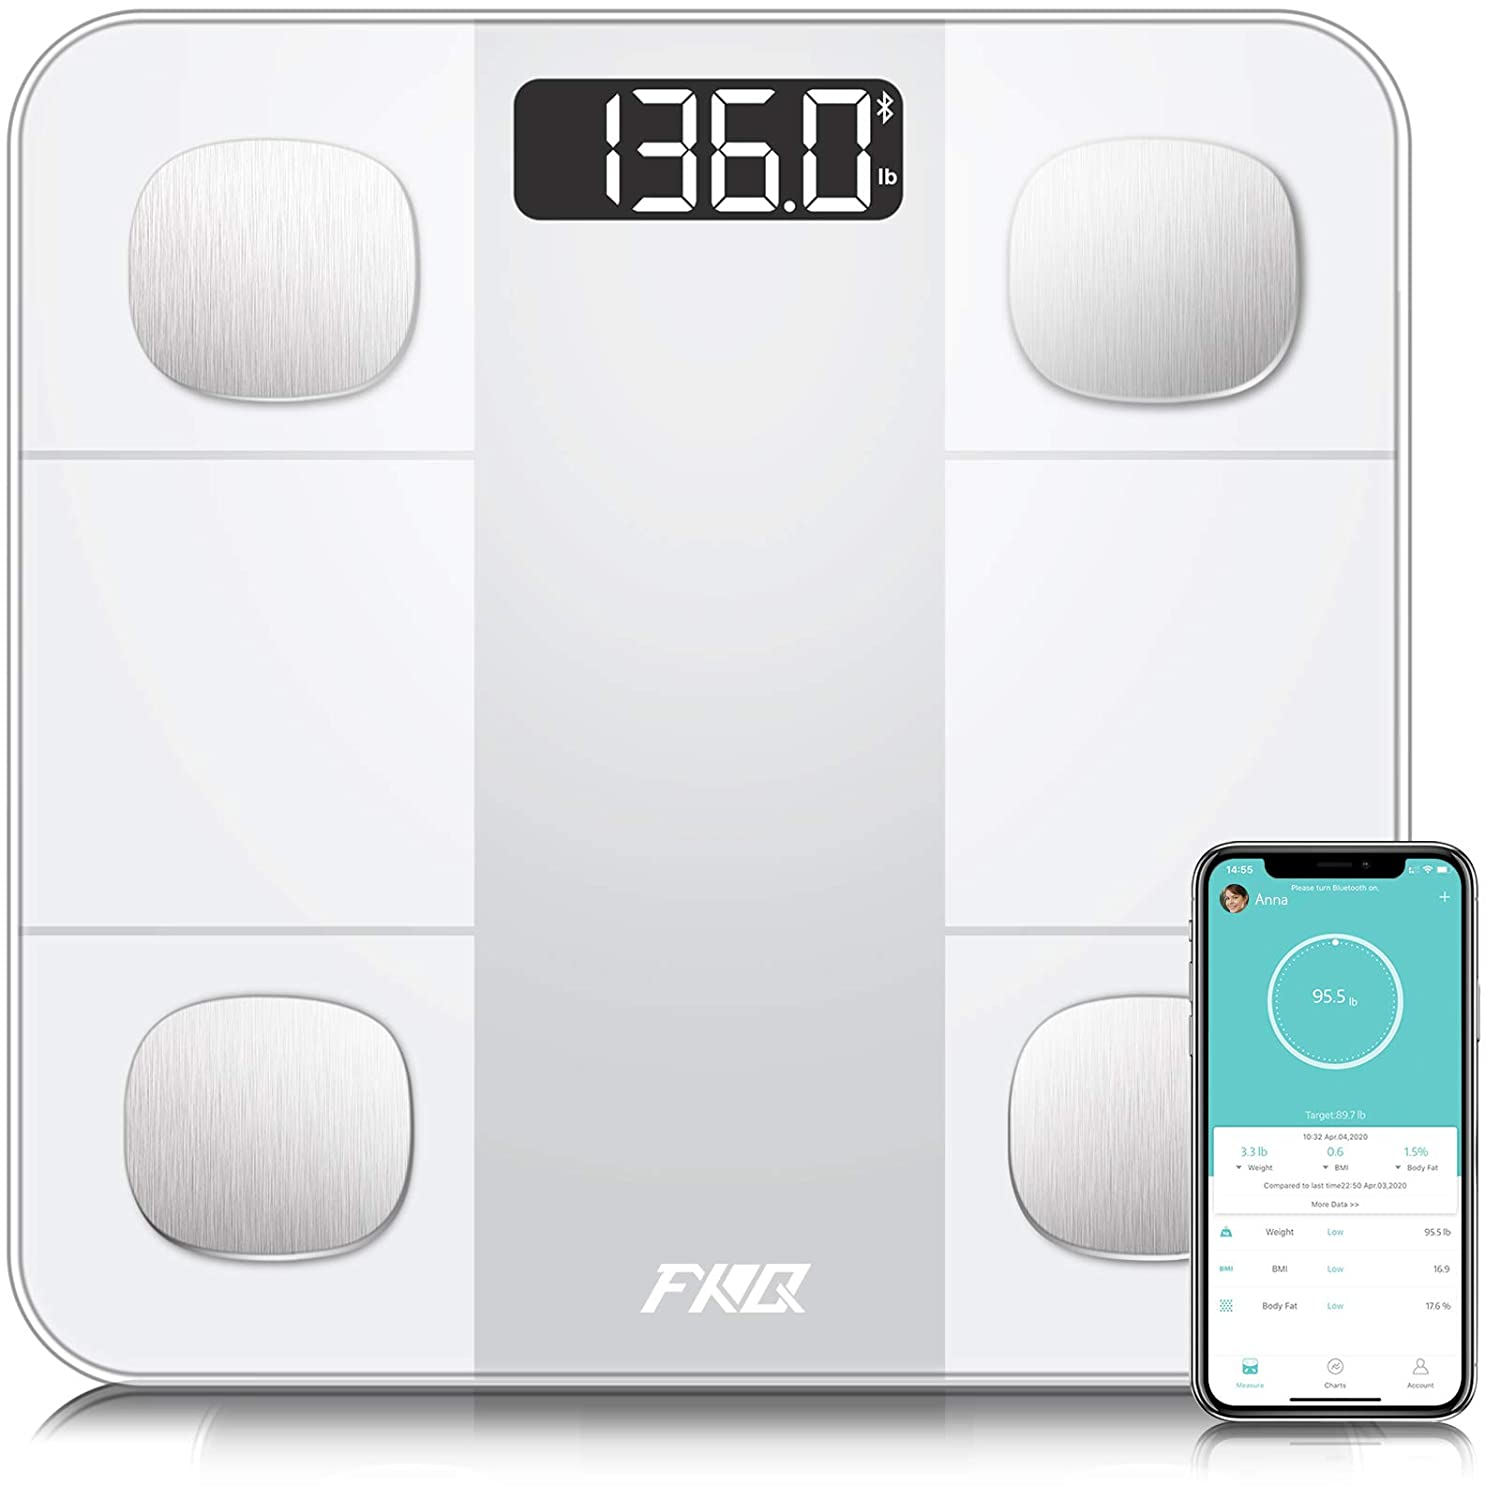 Bluetooth Body Fat Scale, Digital Body Weight Bathroom Scale Tracks 14 Compositions, Smart Wireless BMI Body Analyzer Scale with Smartphone App, Large LCD Backlit, 396Lb